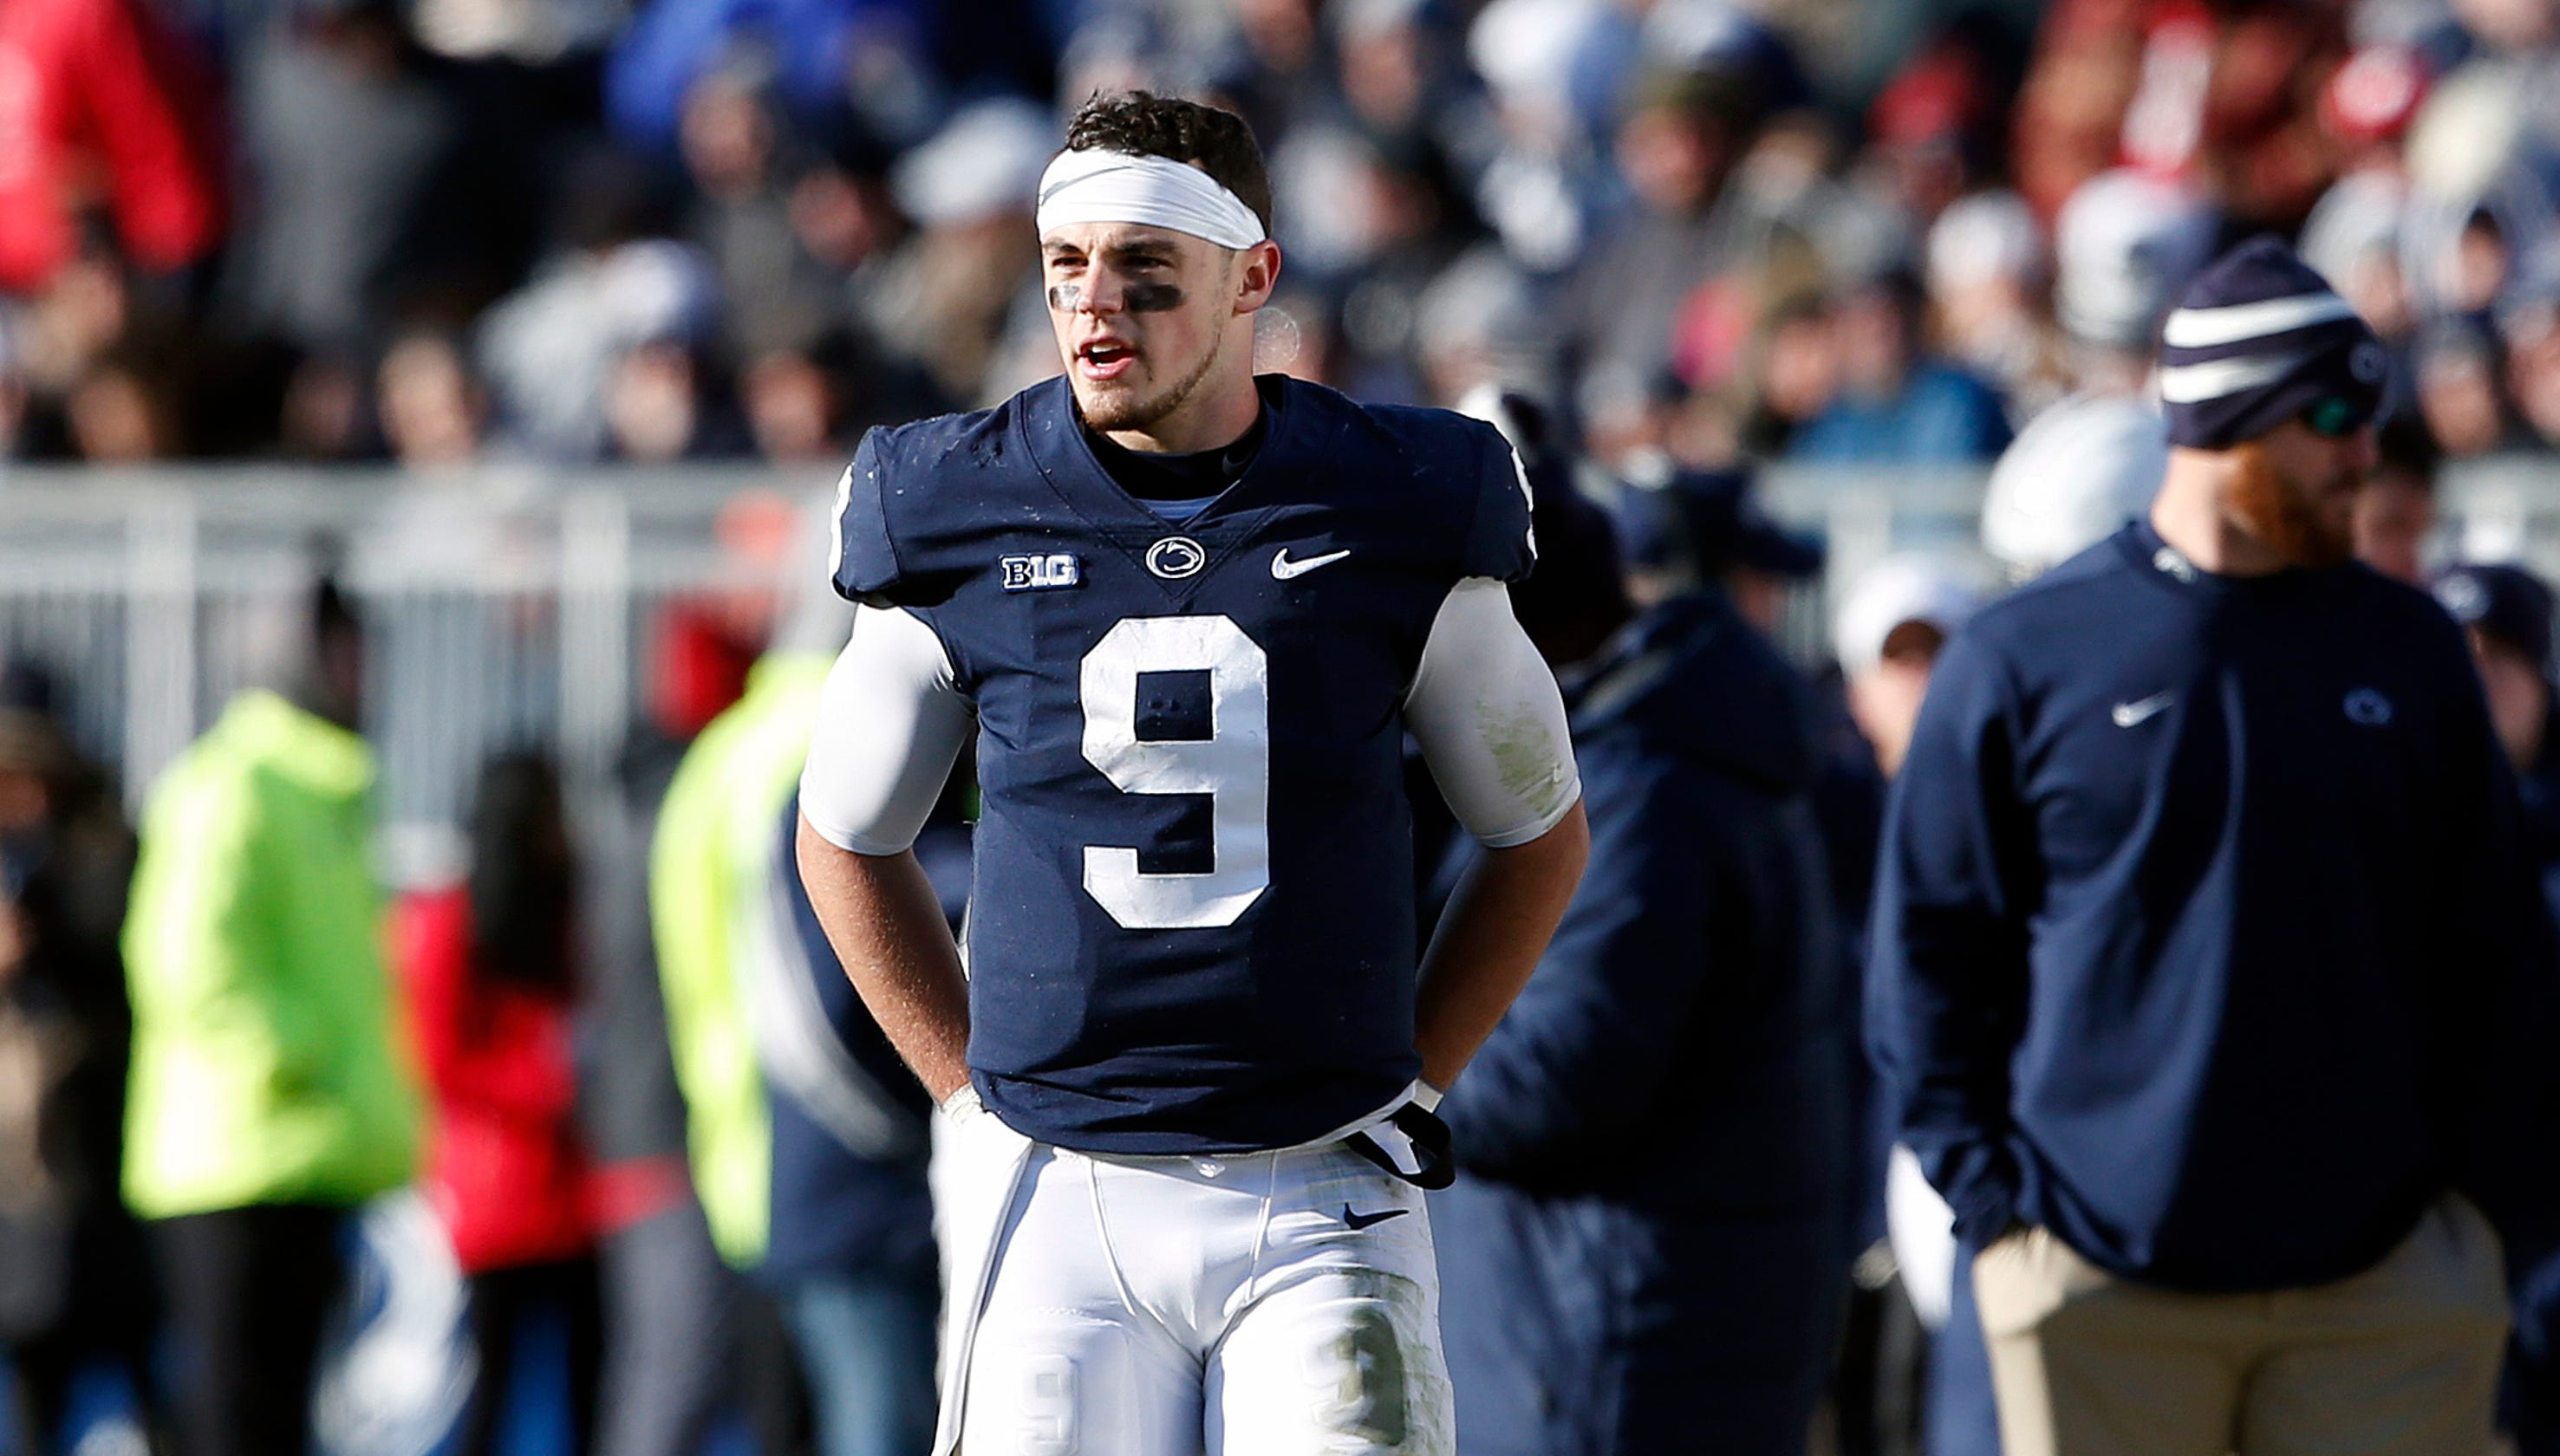 820d86a35 Rutgers-Penn State  As Trace McSorley nears wins record